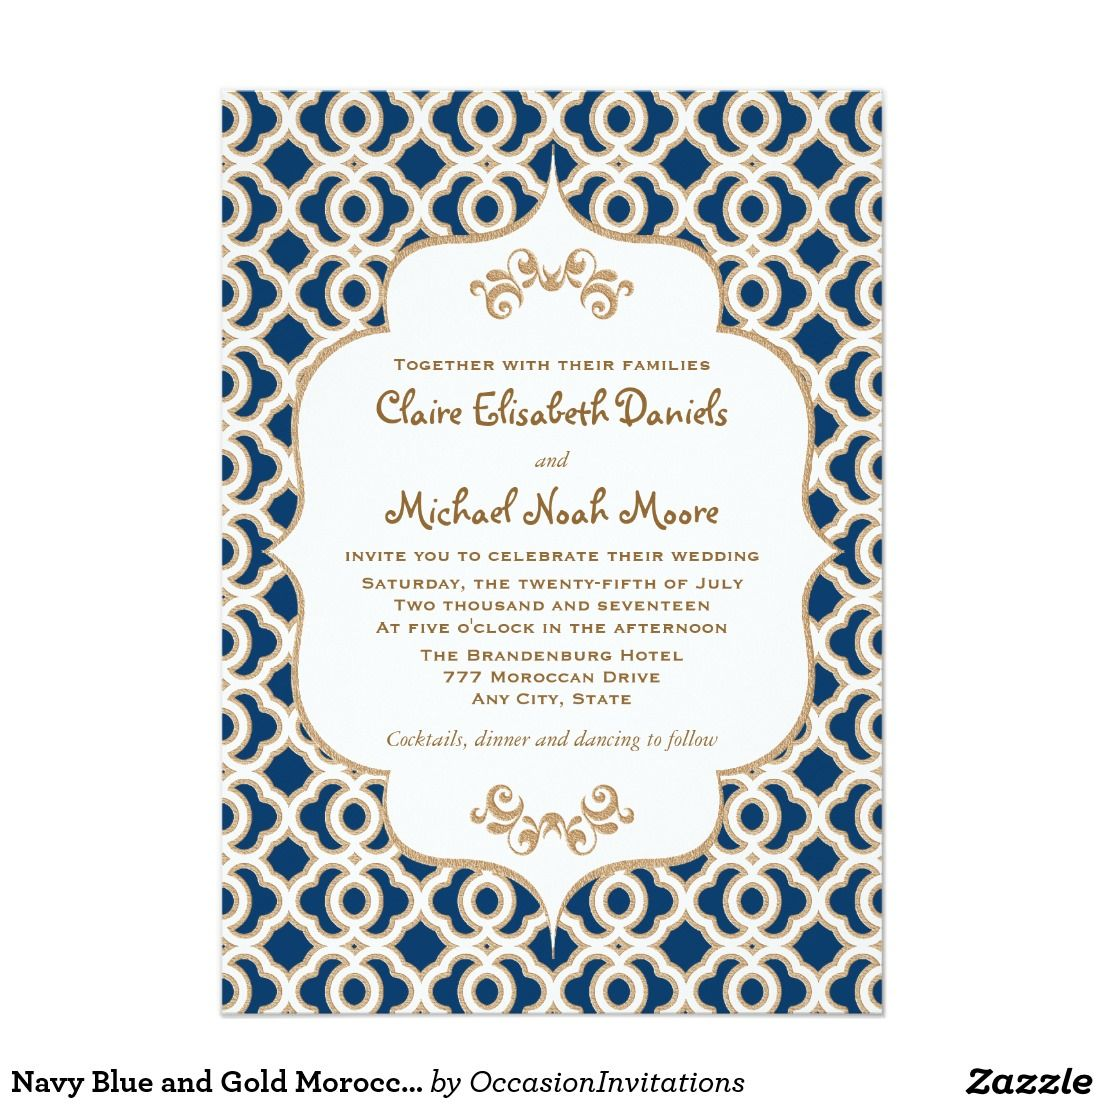 Navy Blue and Gold Moroccan Wedding Invitations | Moroccan wedding ...